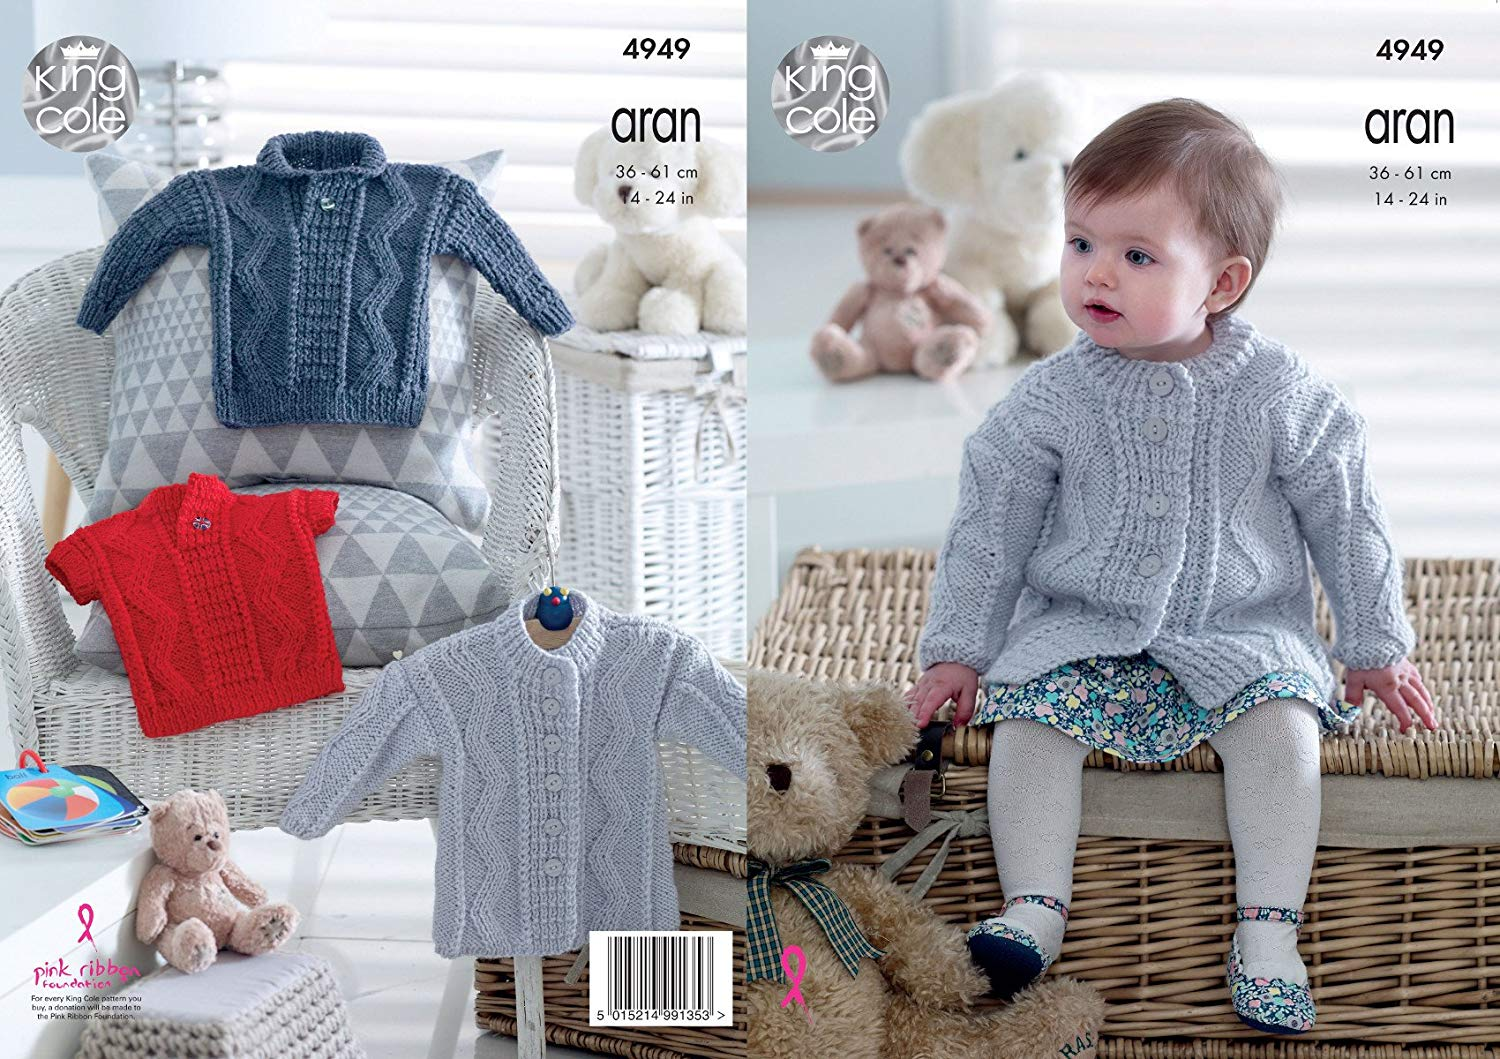 9253809678e064 Get Quotations · King Cole Baby Aran Knitting Pattern for Cable Knit Coat  Sweater   Sleeveless Pullover (4949